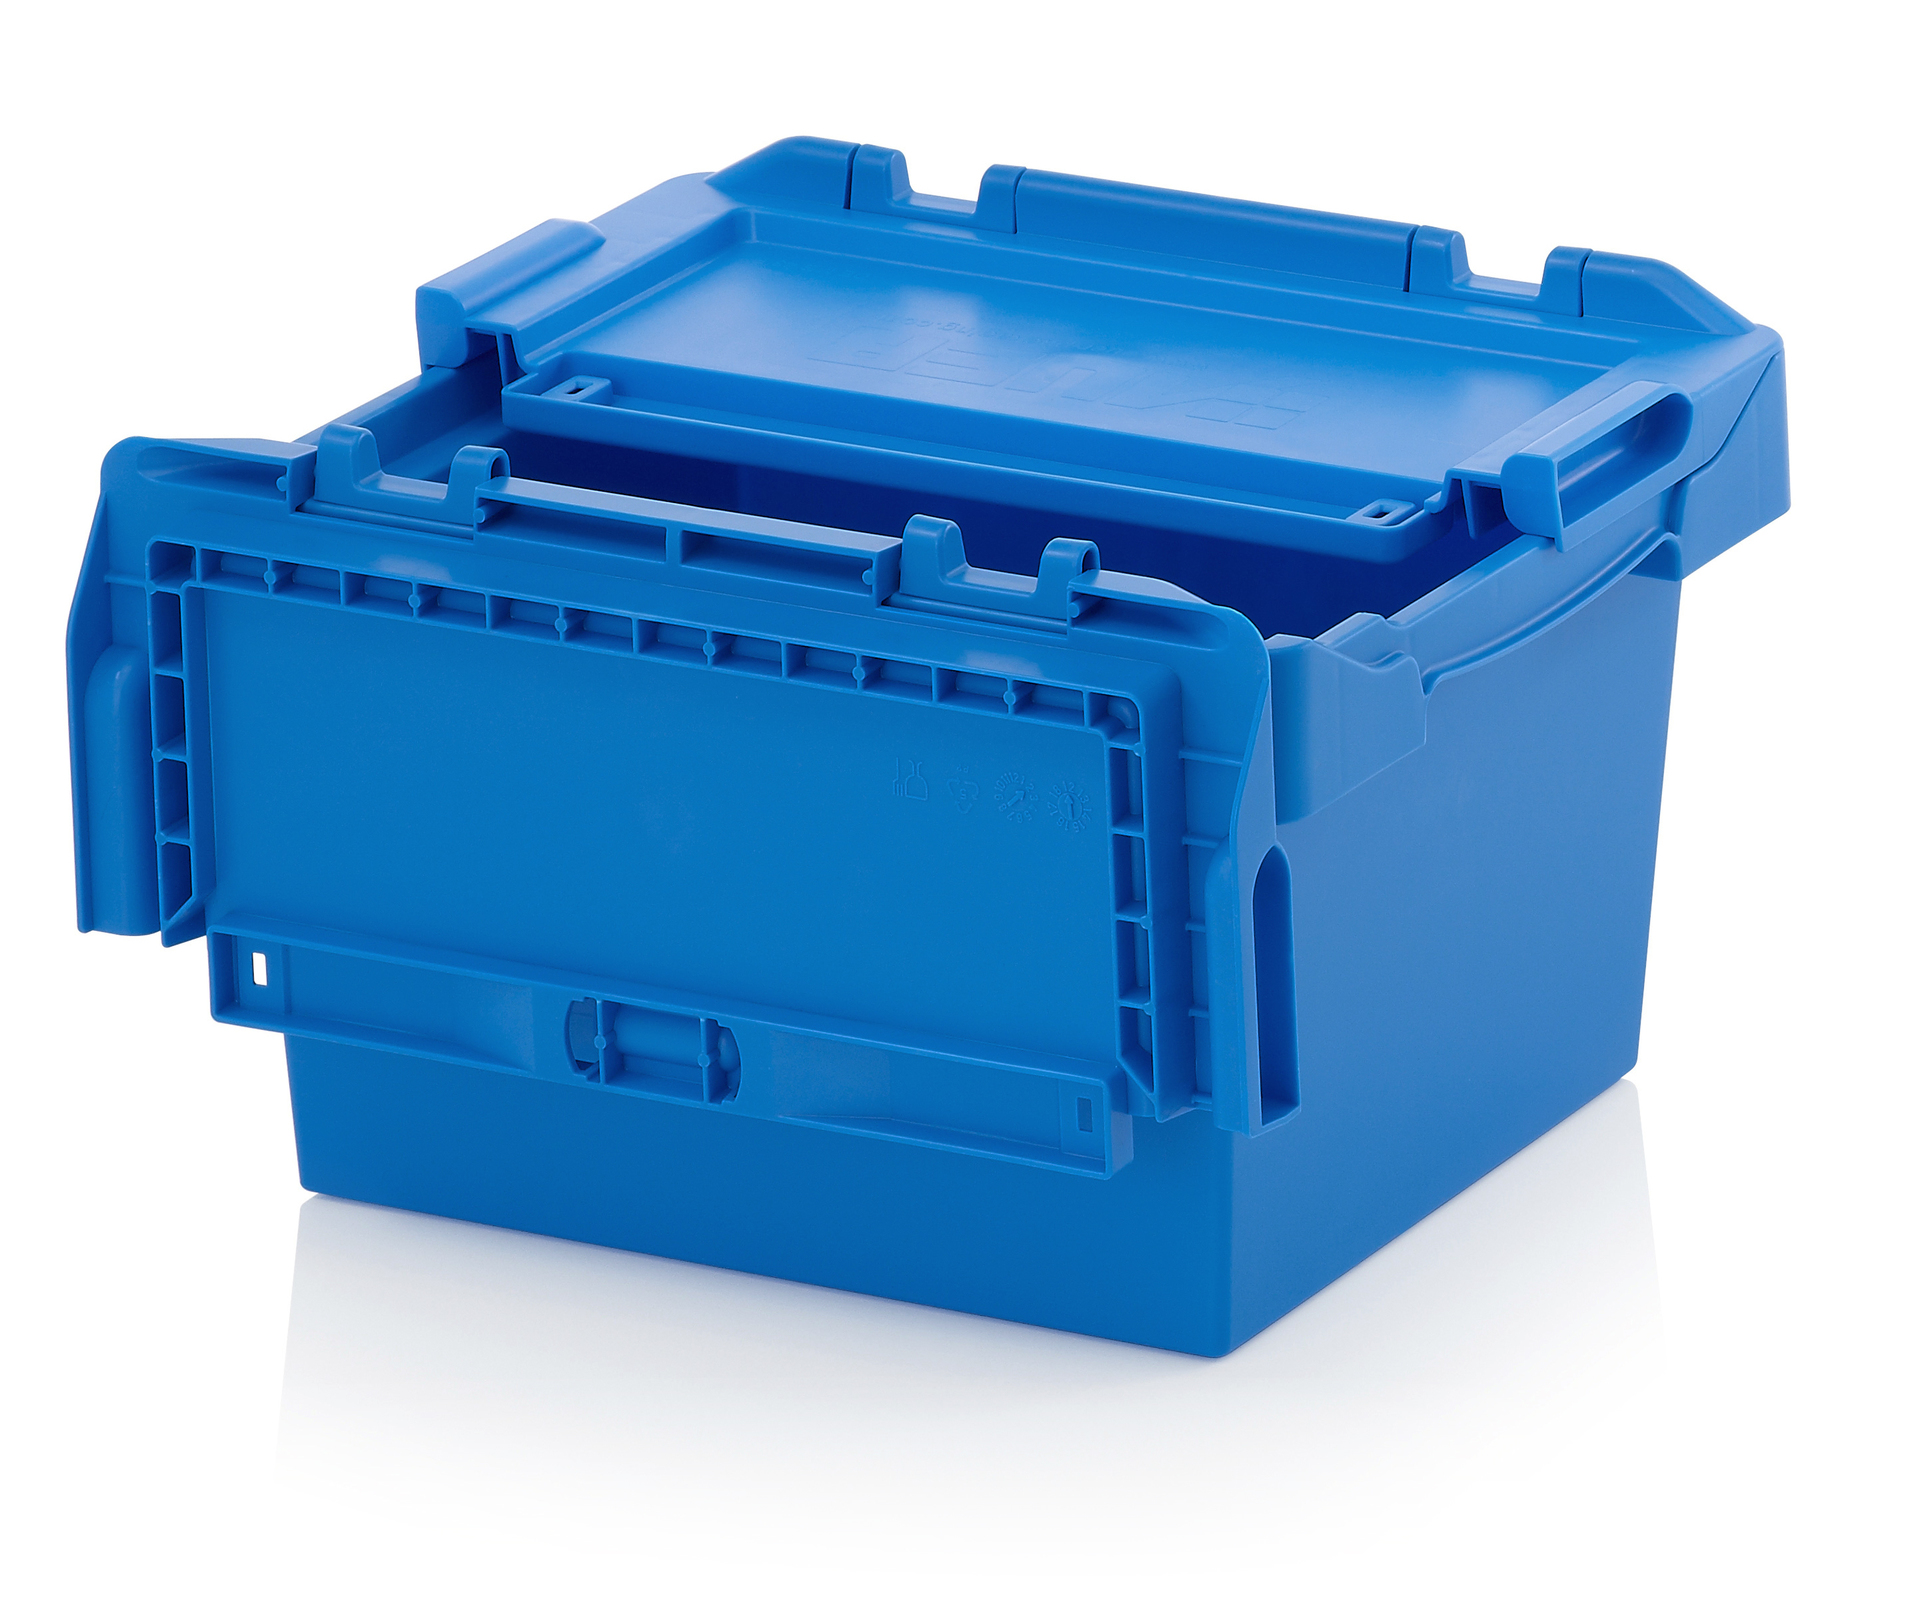 RC4220L_2 Reusable Containers - Plastic Mouldings Northern